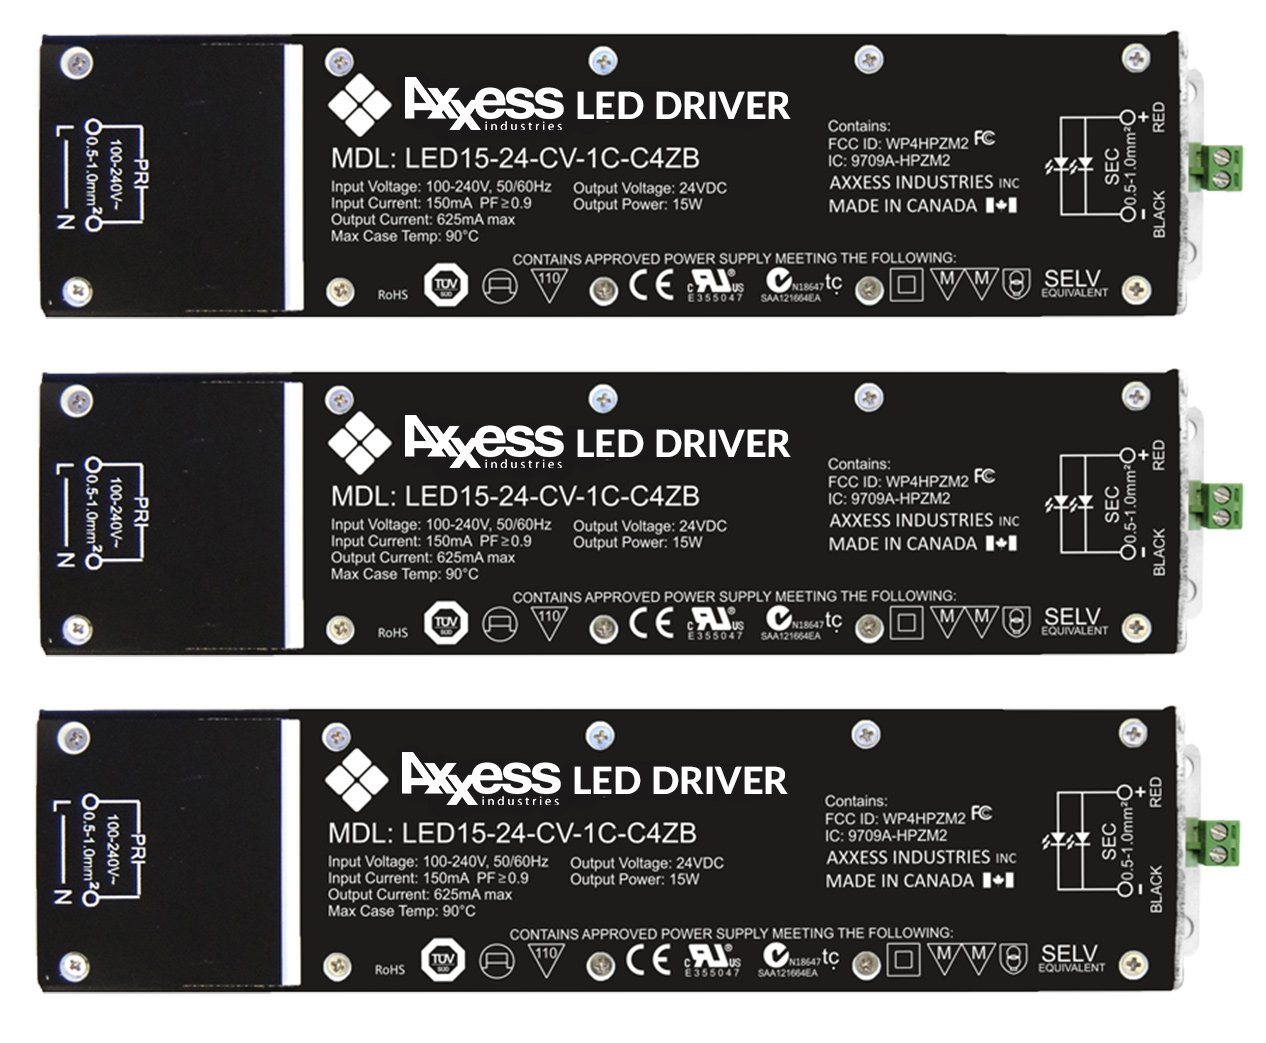 axxes led drivers